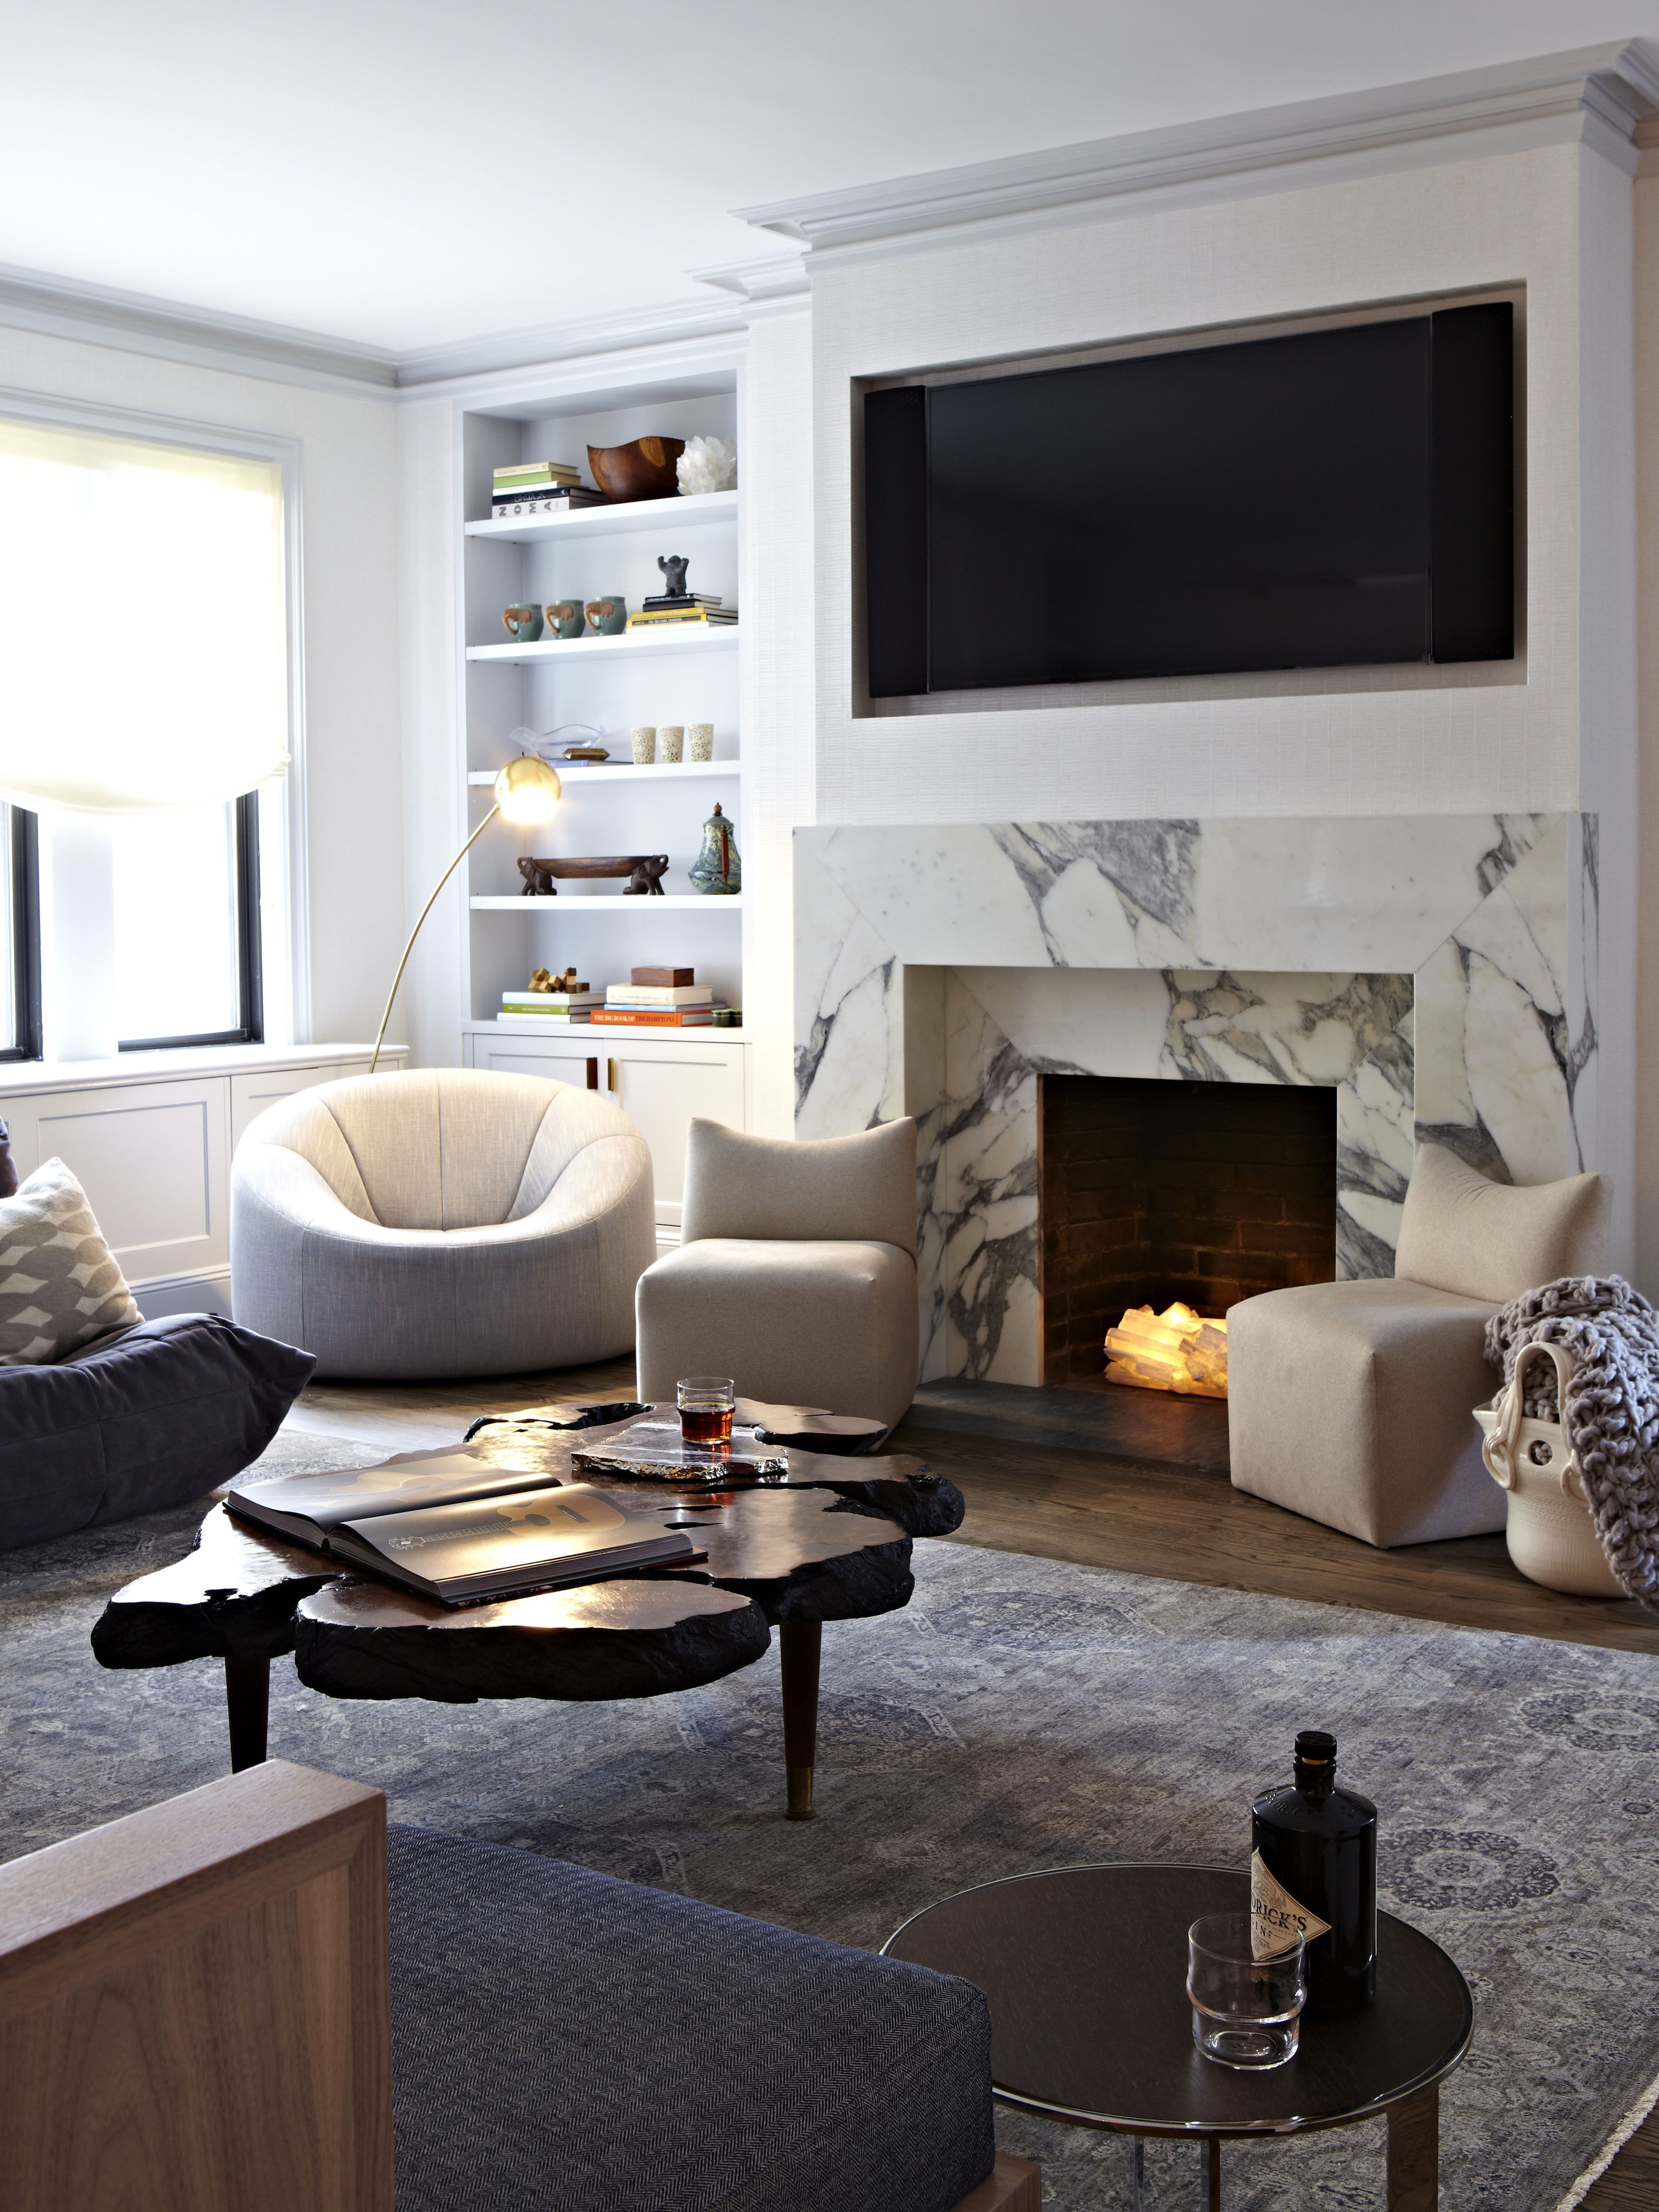 12 Ideas For Decorating A Nonworking Fireplace  Creativity Prepossessing Interior Design Ideas For Living Rooms With Fireplace 2018